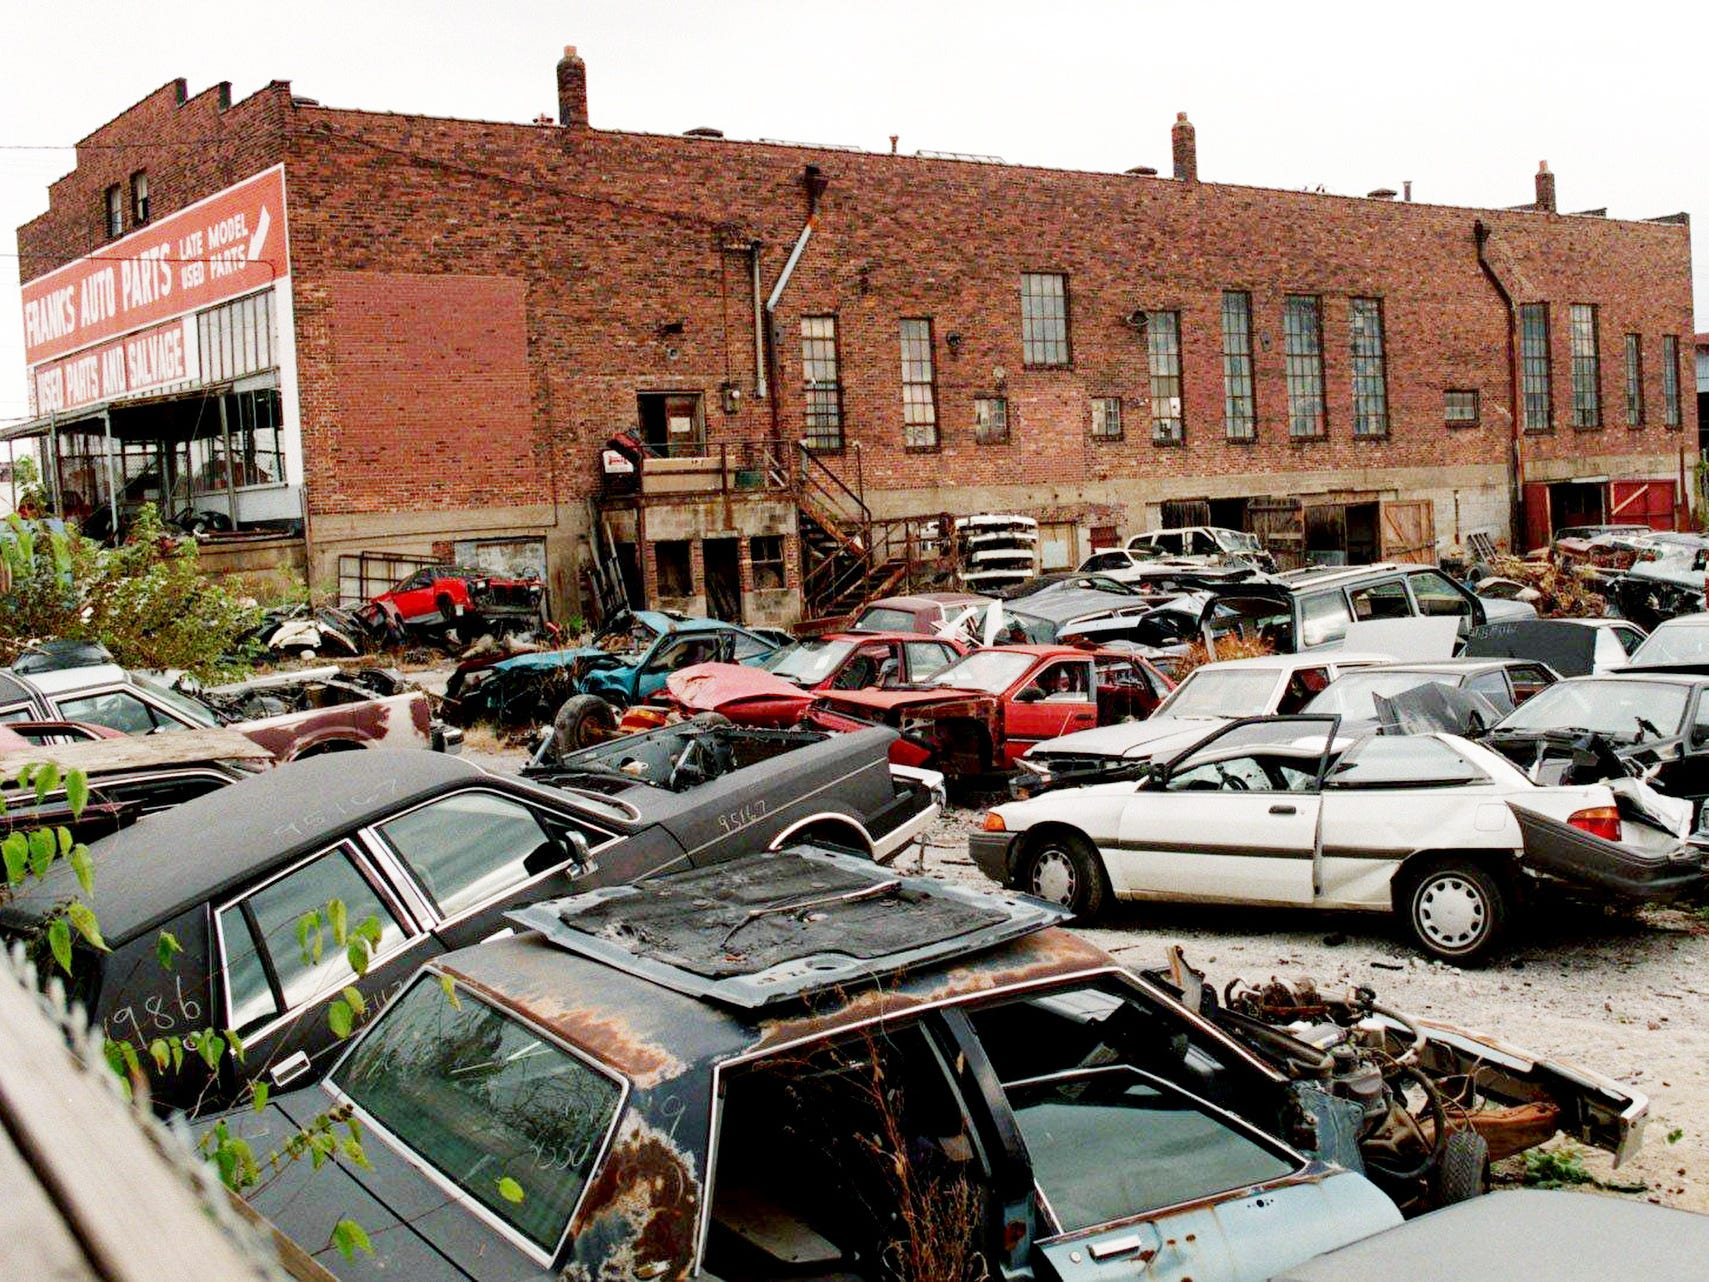 Franks Auto Parts, shown here Nov. 8, 1996 on the East bank near the Cumberland River, was bought by the city of Nashville to make way for the site of the new football stadium.